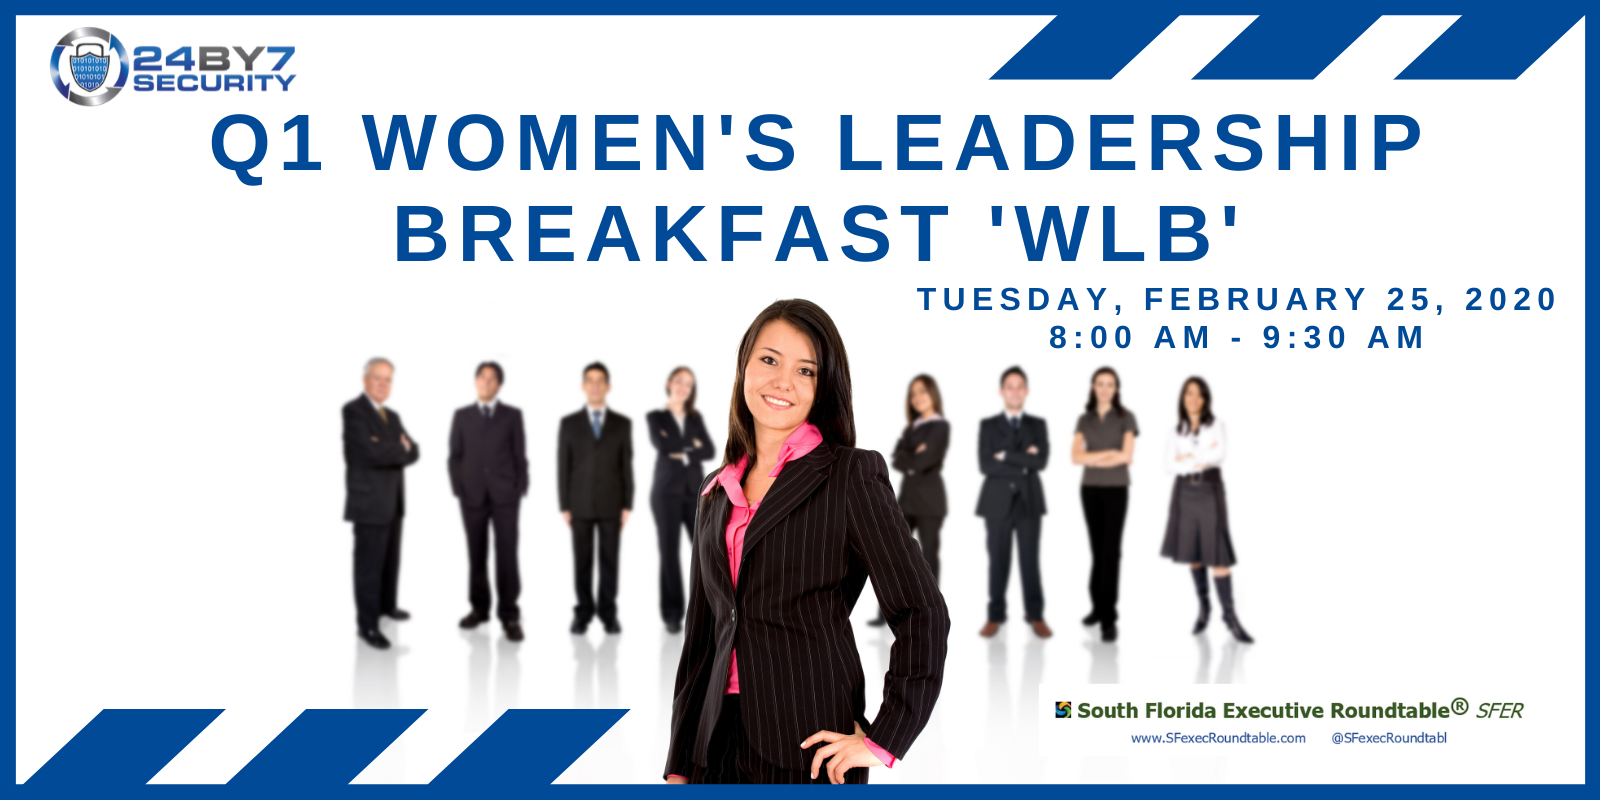 Q1 Womens Leadership Breakfast WLB